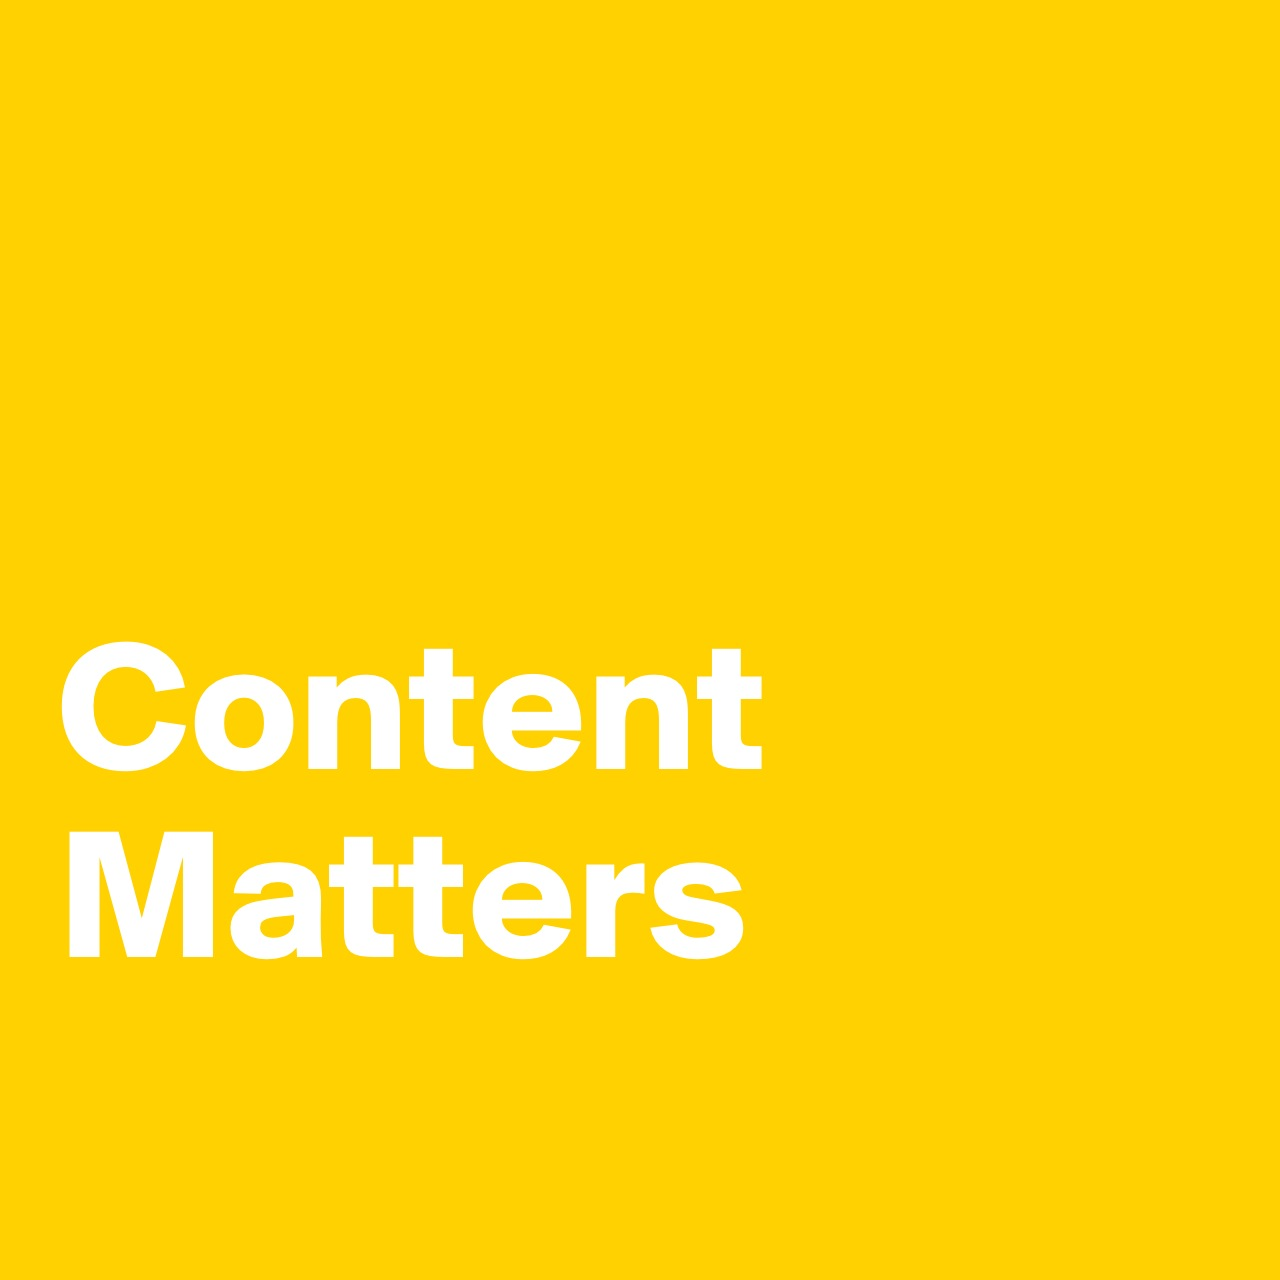 Content Matters, The Red Rabbit Studio